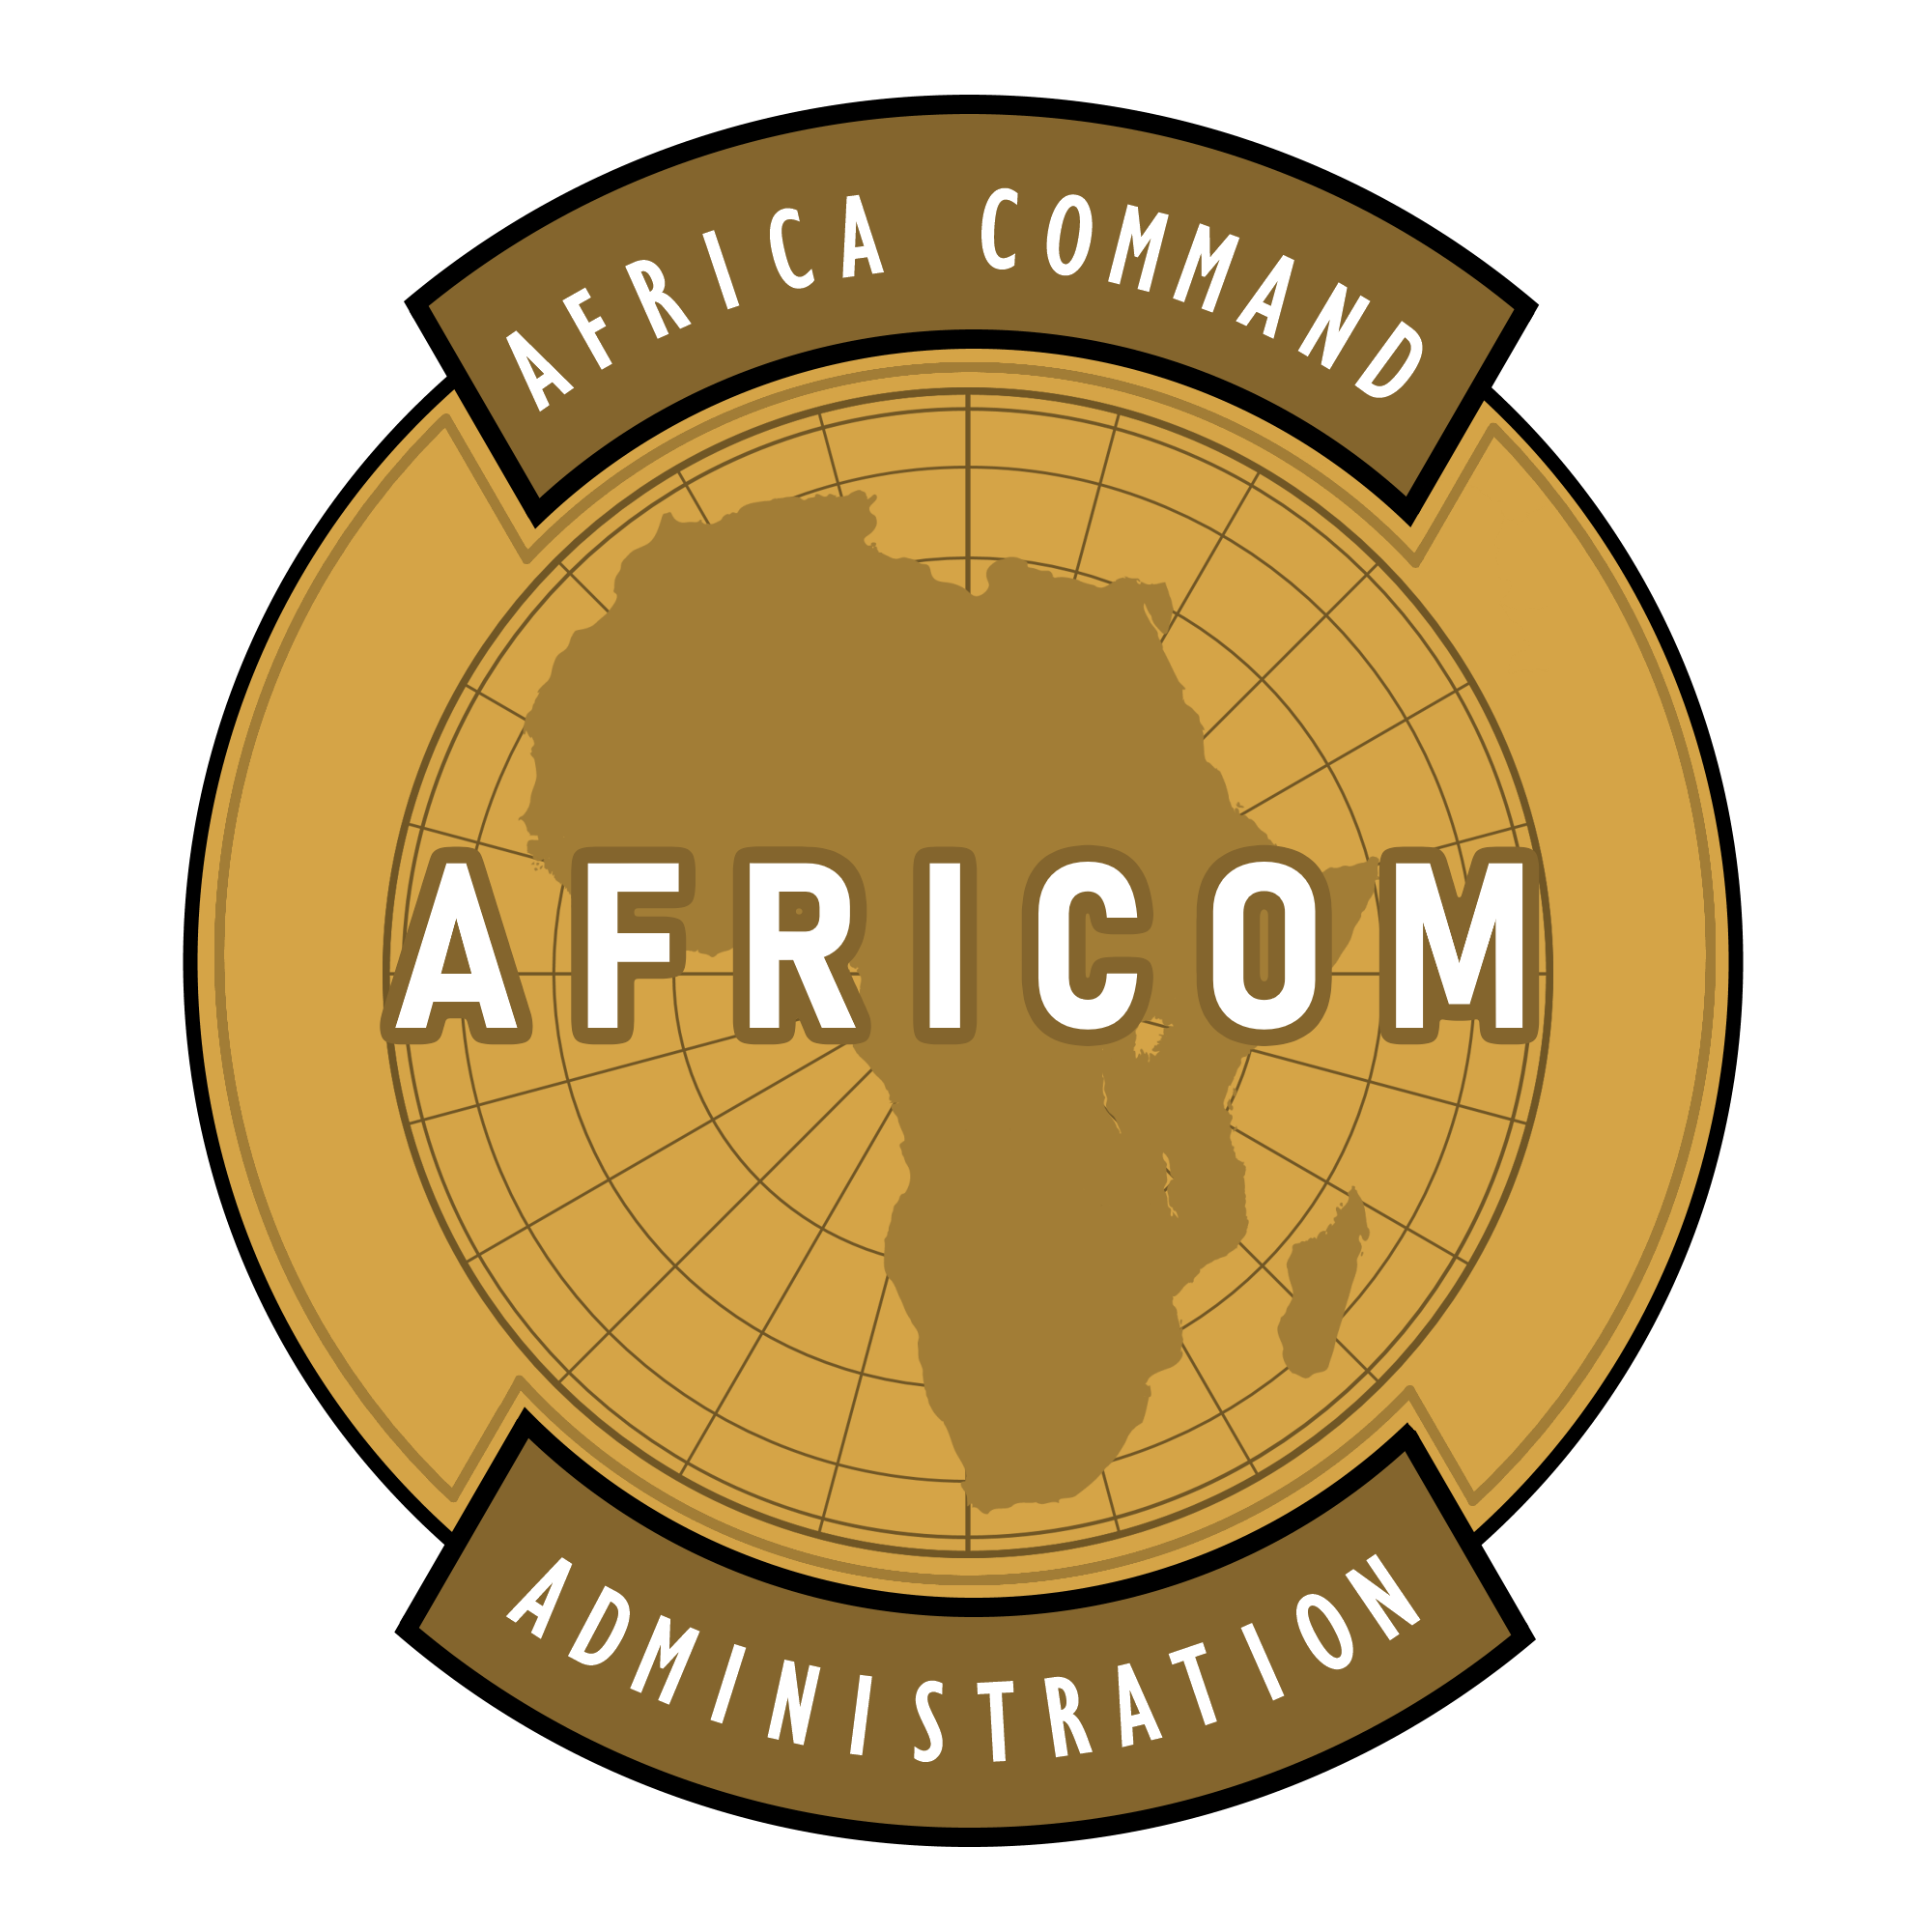 %5B2020%5D%20Africa%20Command.png